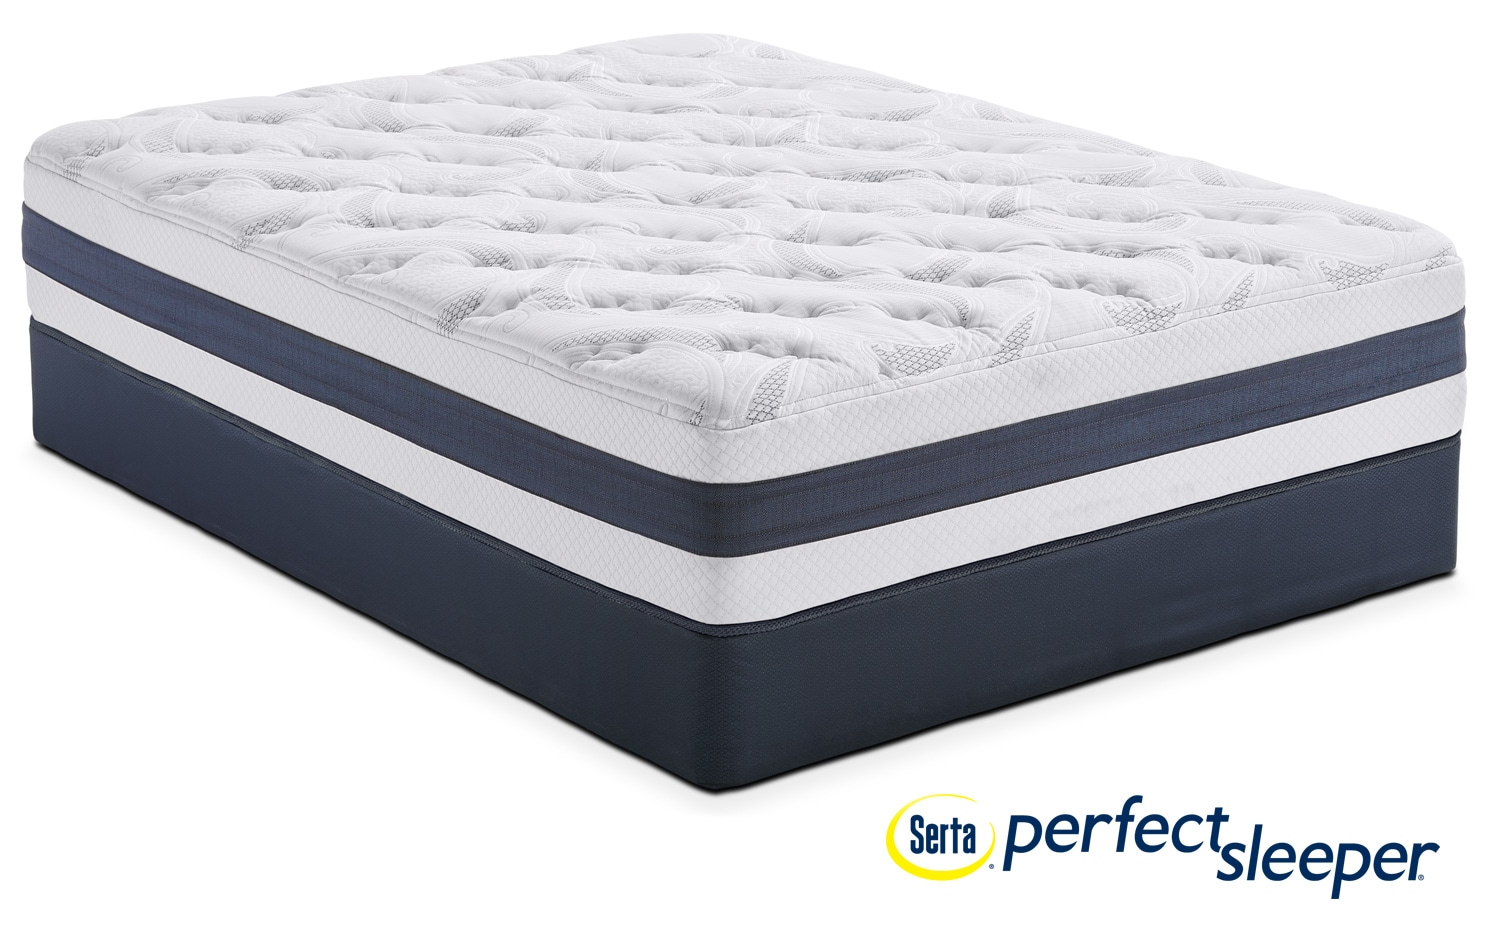 Mattresses and Bedding - Landing Manor Plush Queen Mattress and Foundation Set